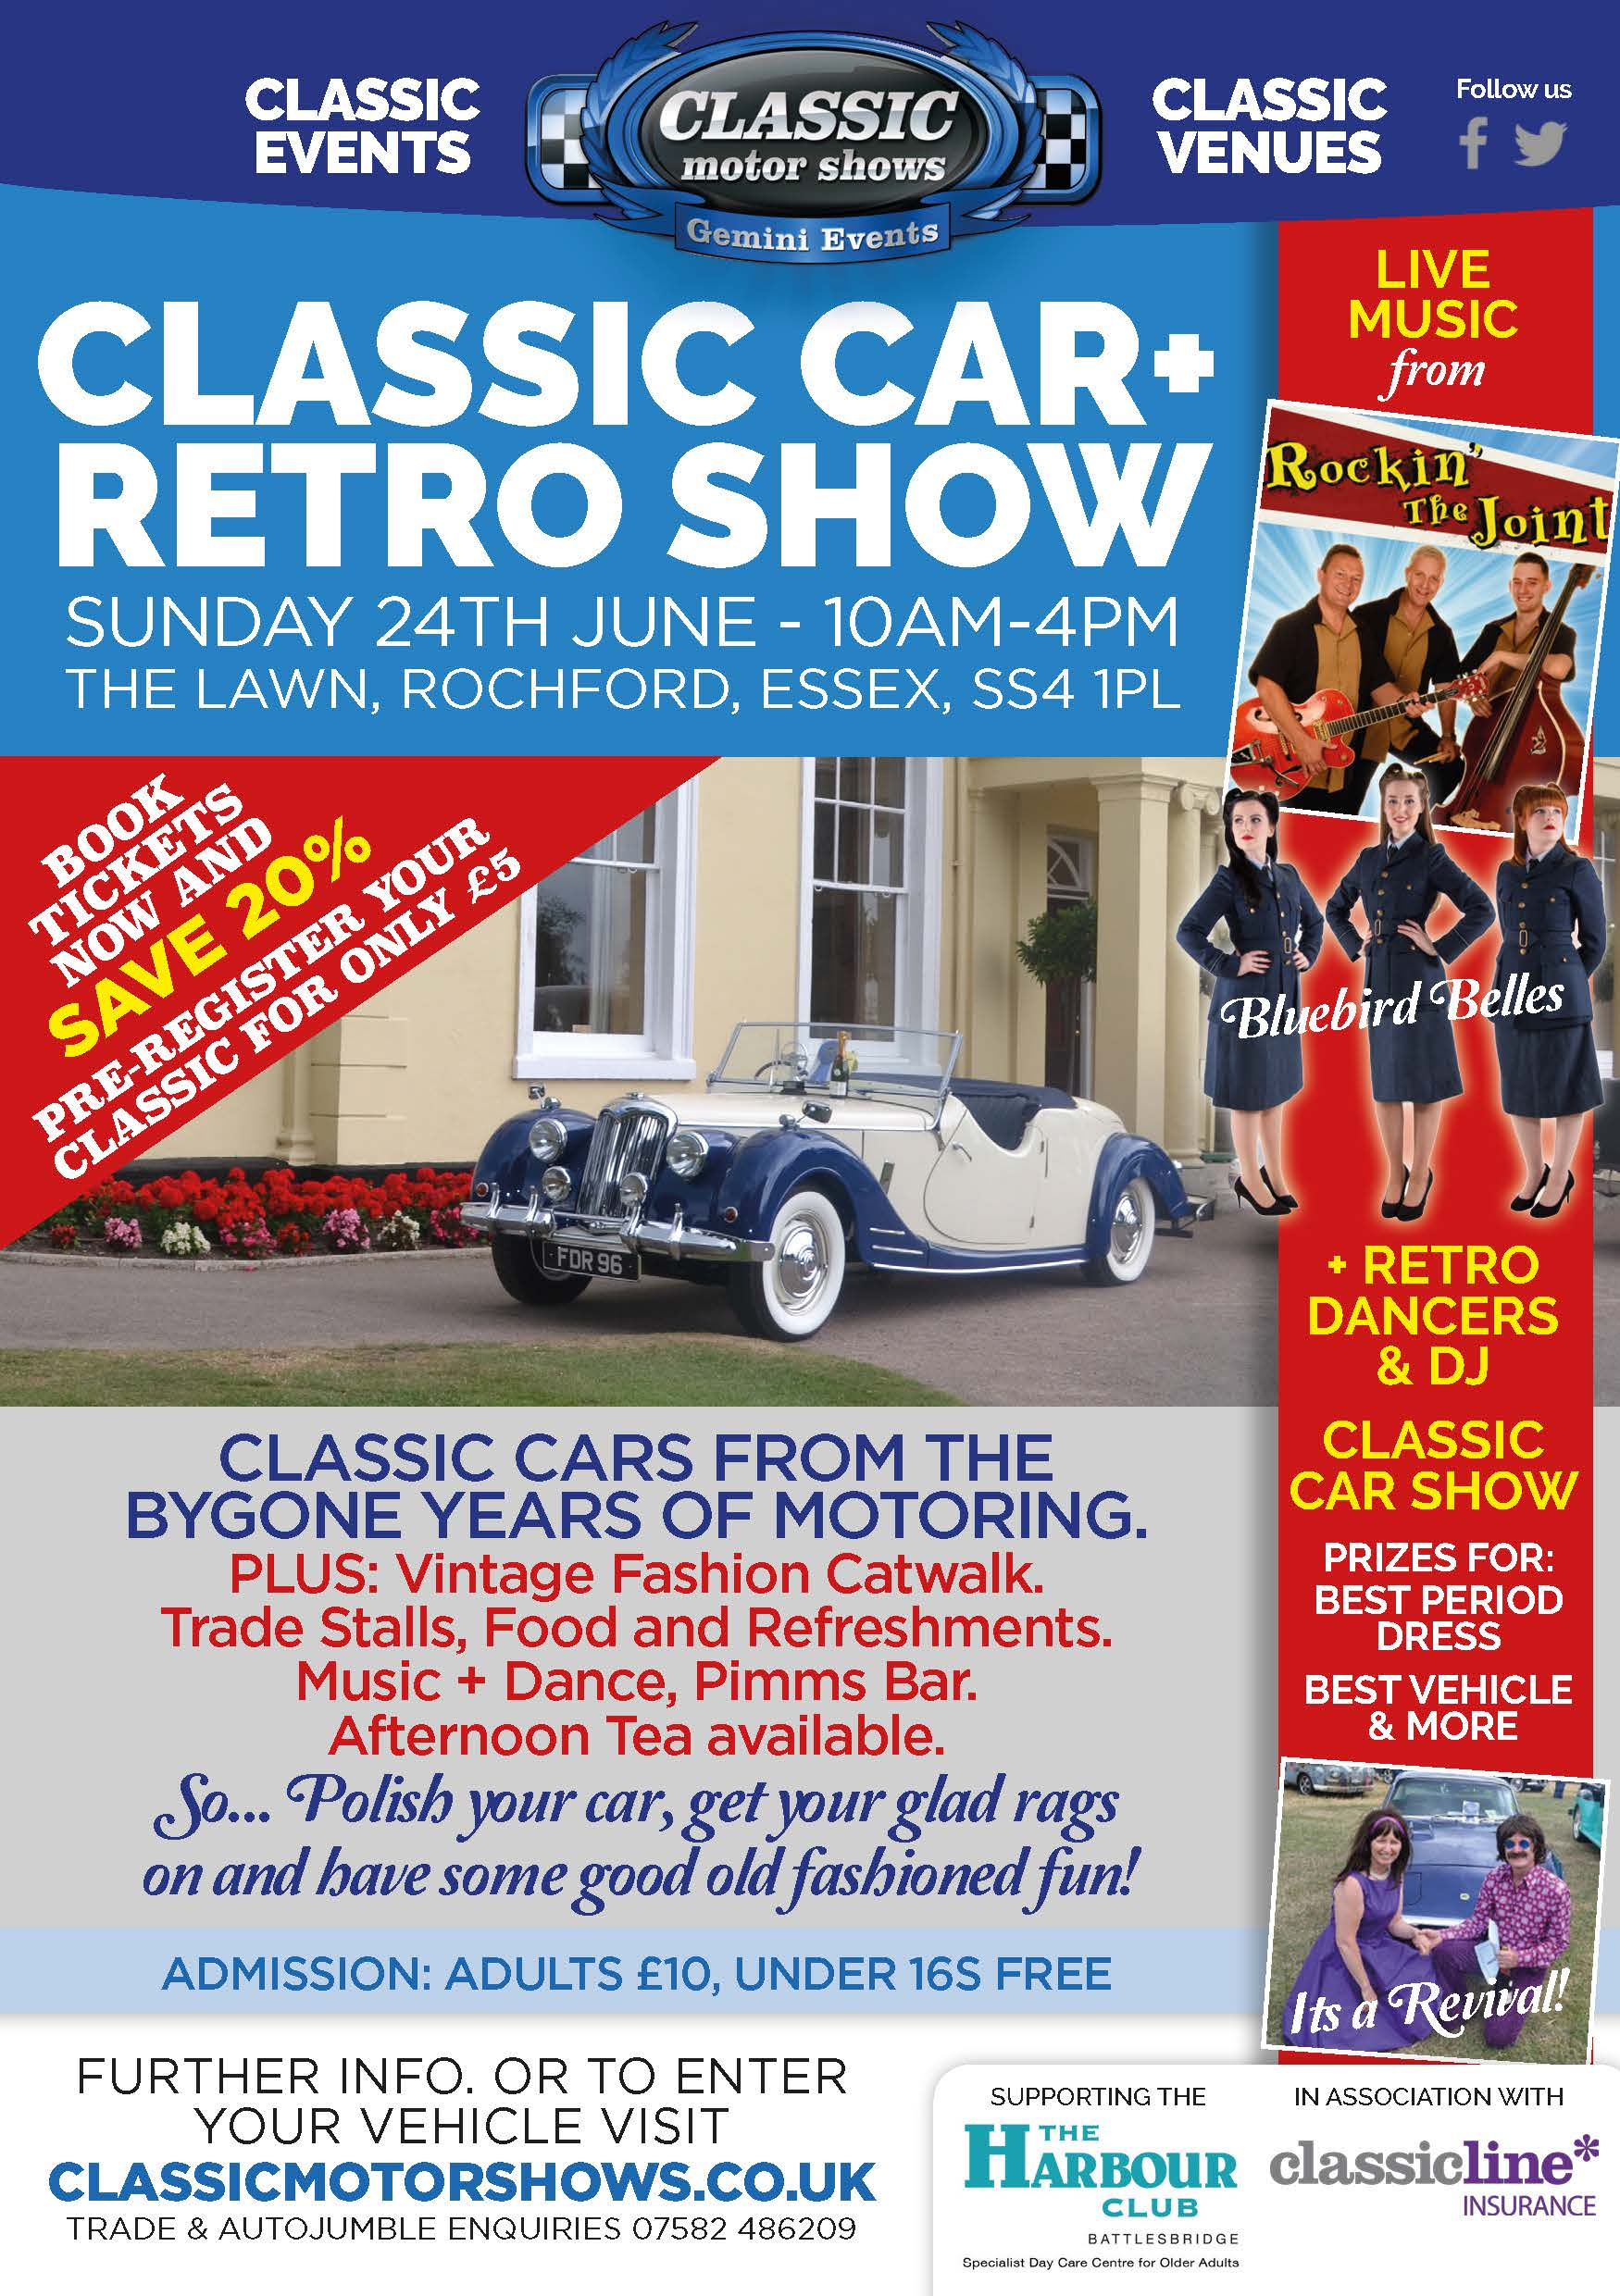 Classic Car Show - The Lawn